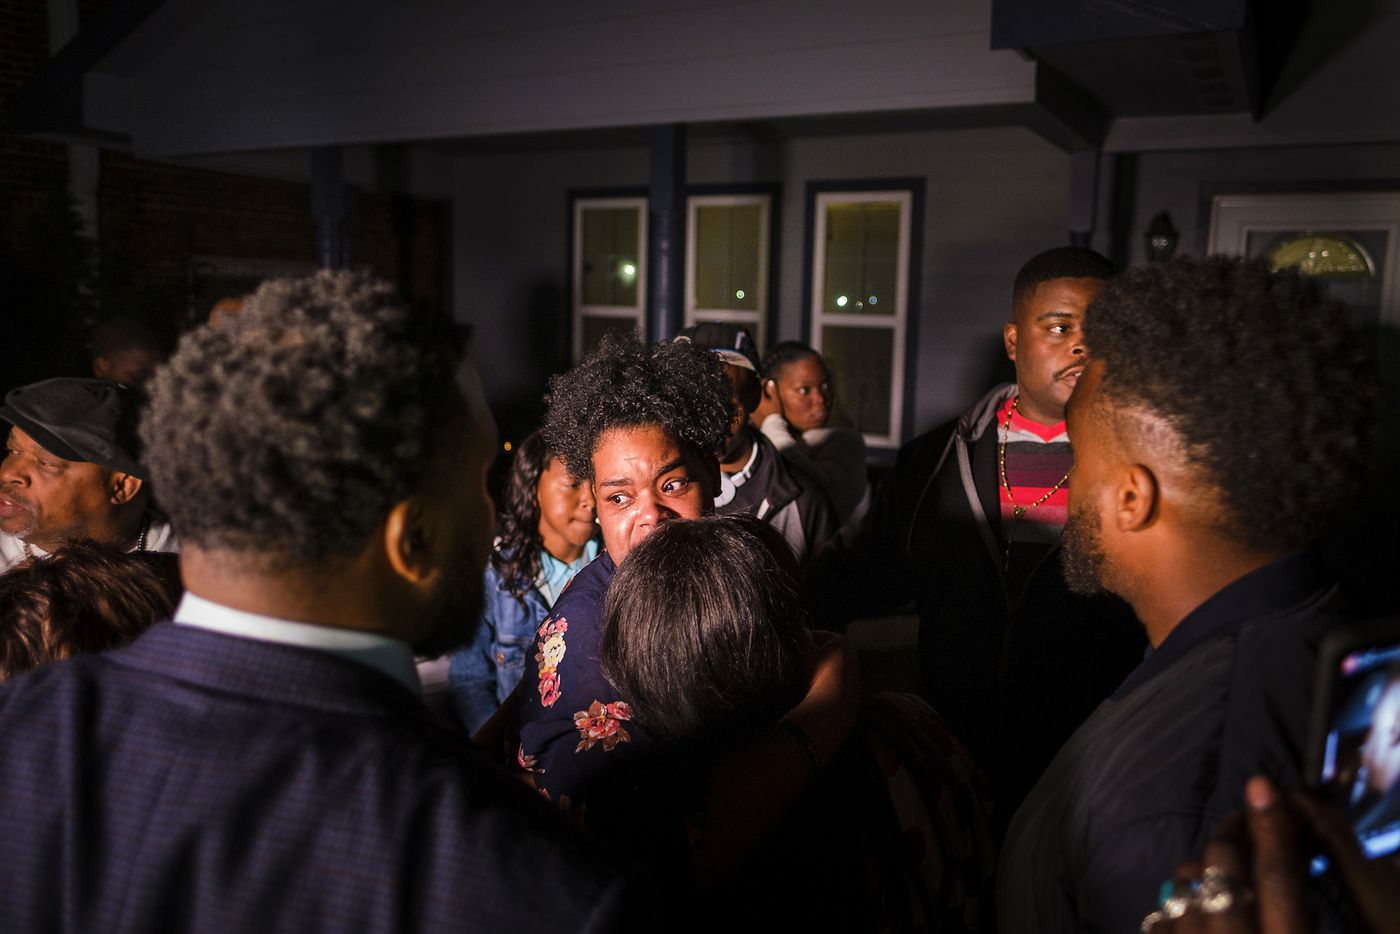 Members of the victimÕs family gather in the front yard of the house where Atatiana Jefferson was shot and killed  during a community vigil for Jefferson  on Sunday, Oct. 13, 2019, in Fort Worth.